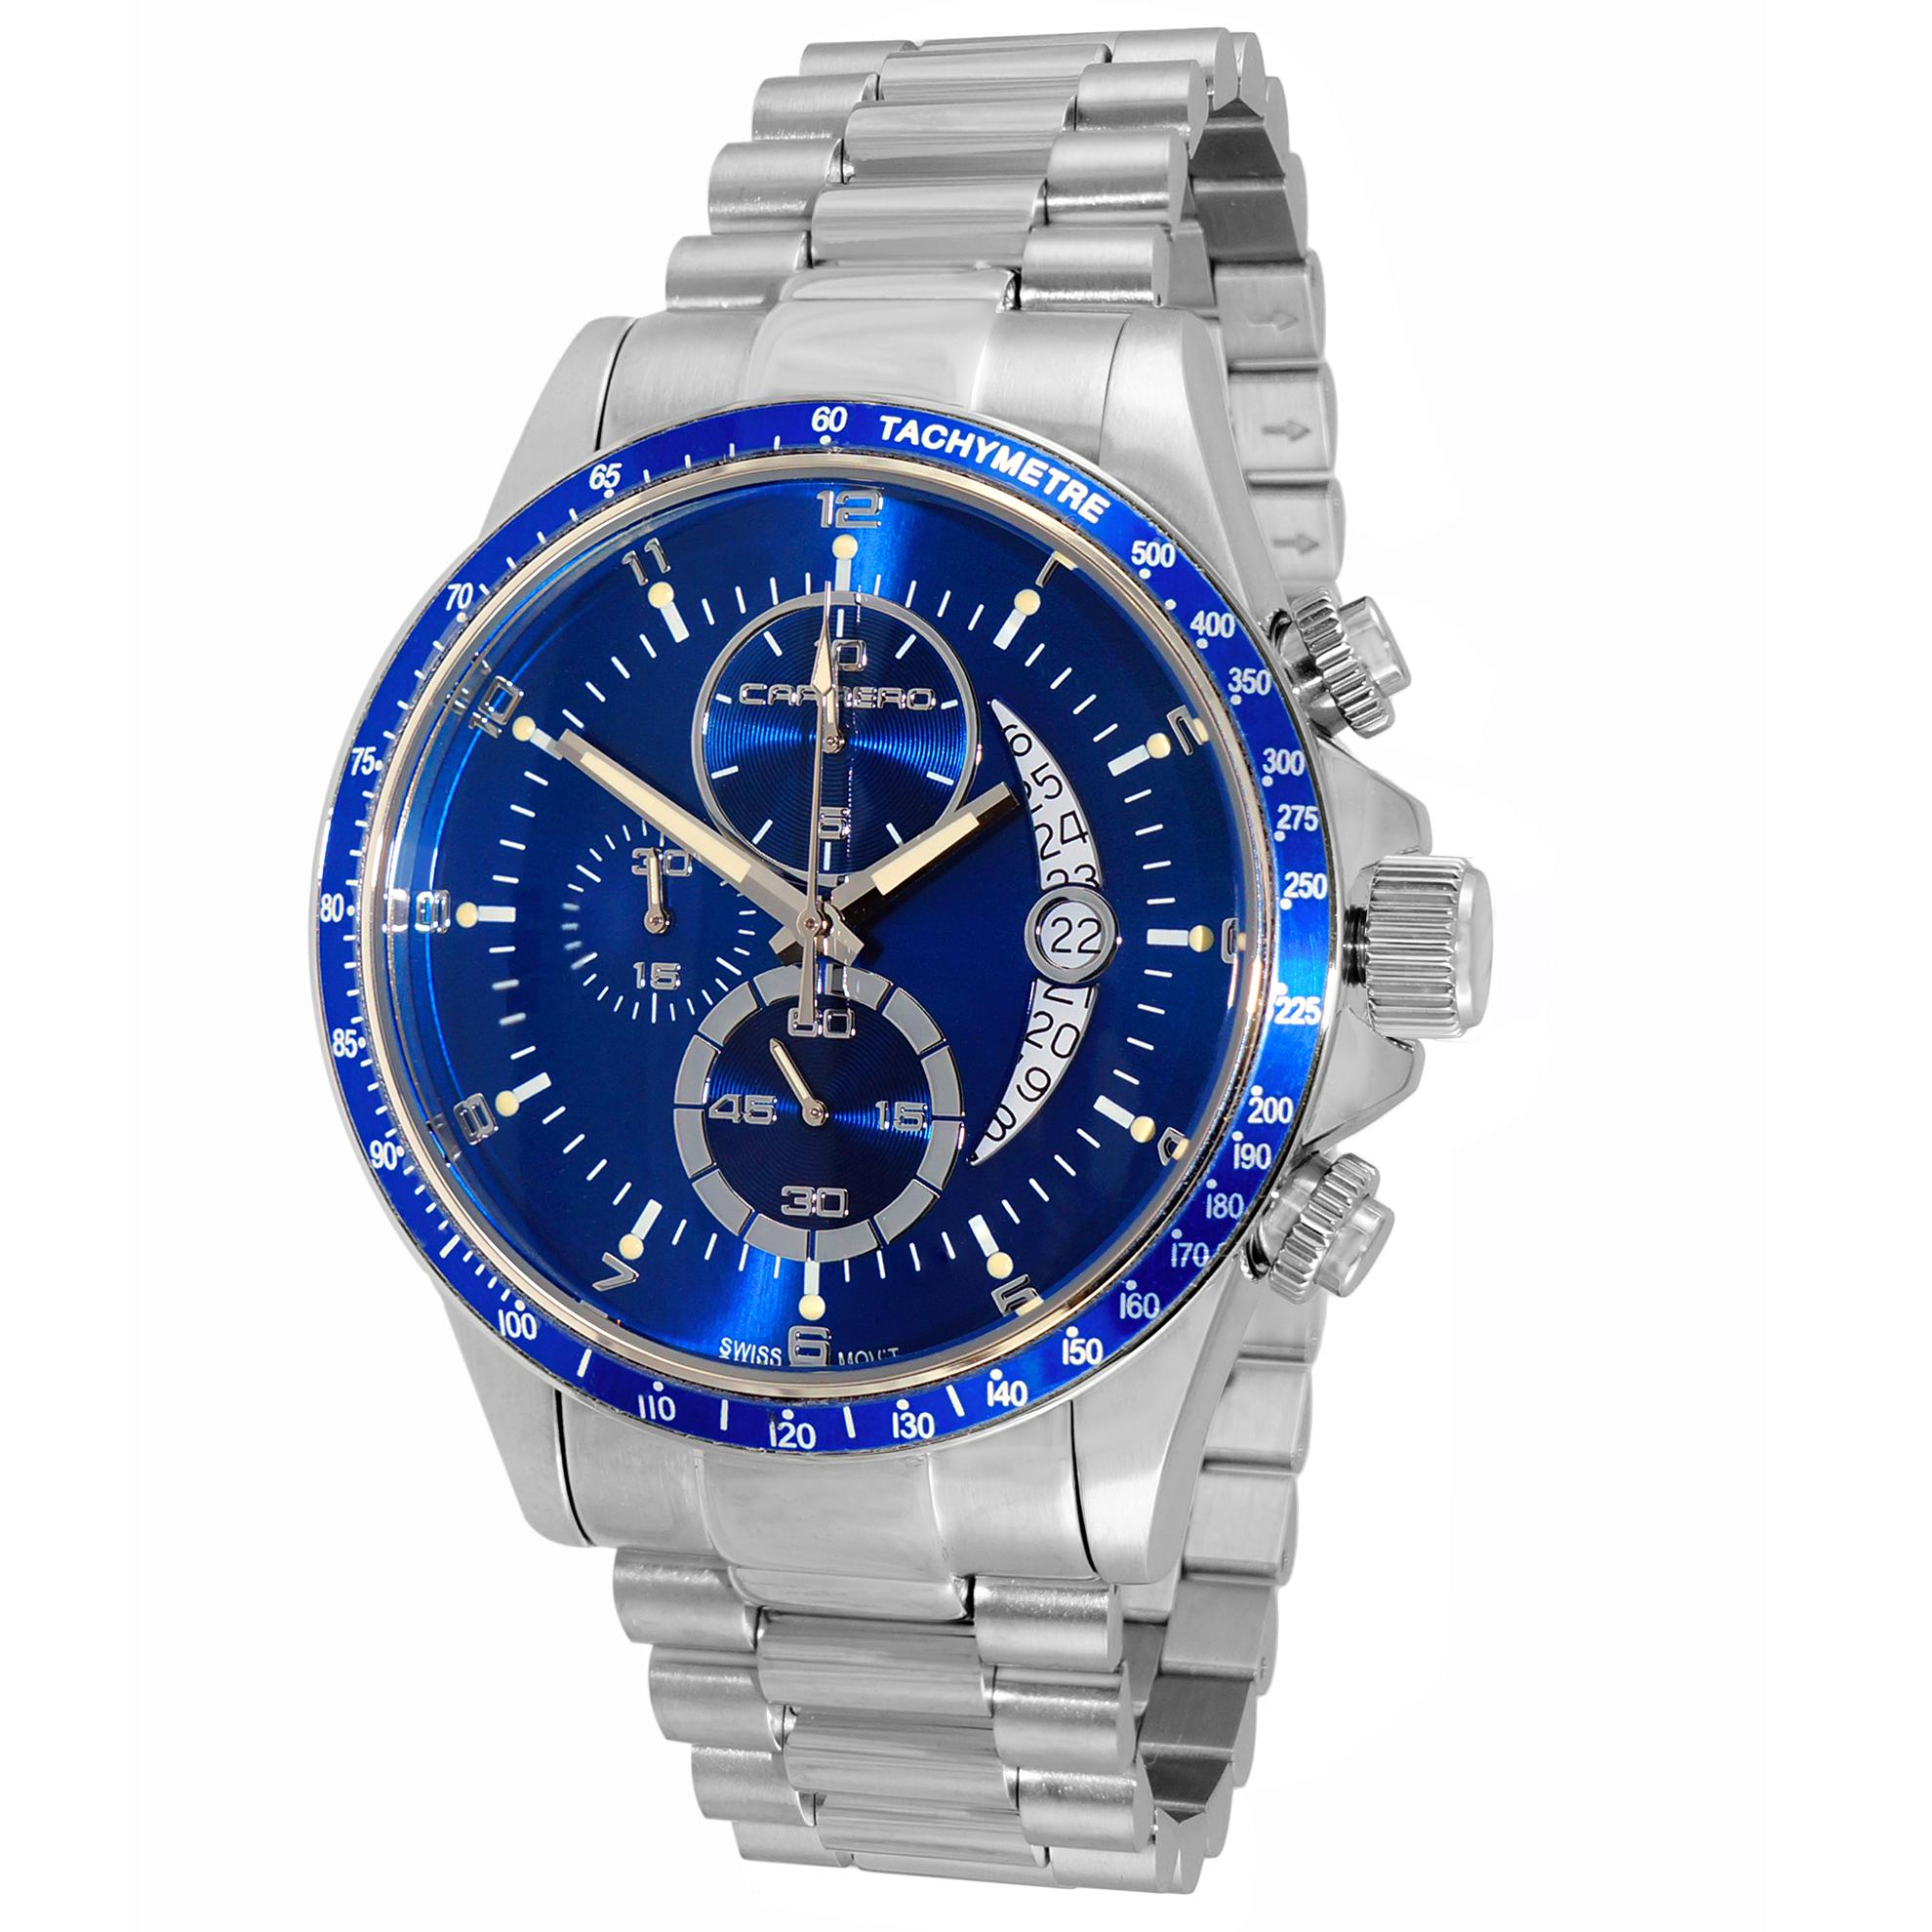 Carrero C1S111BU Carrero Catania R1 Limited Edition Swiss Chronograph Stainless Steel Blue